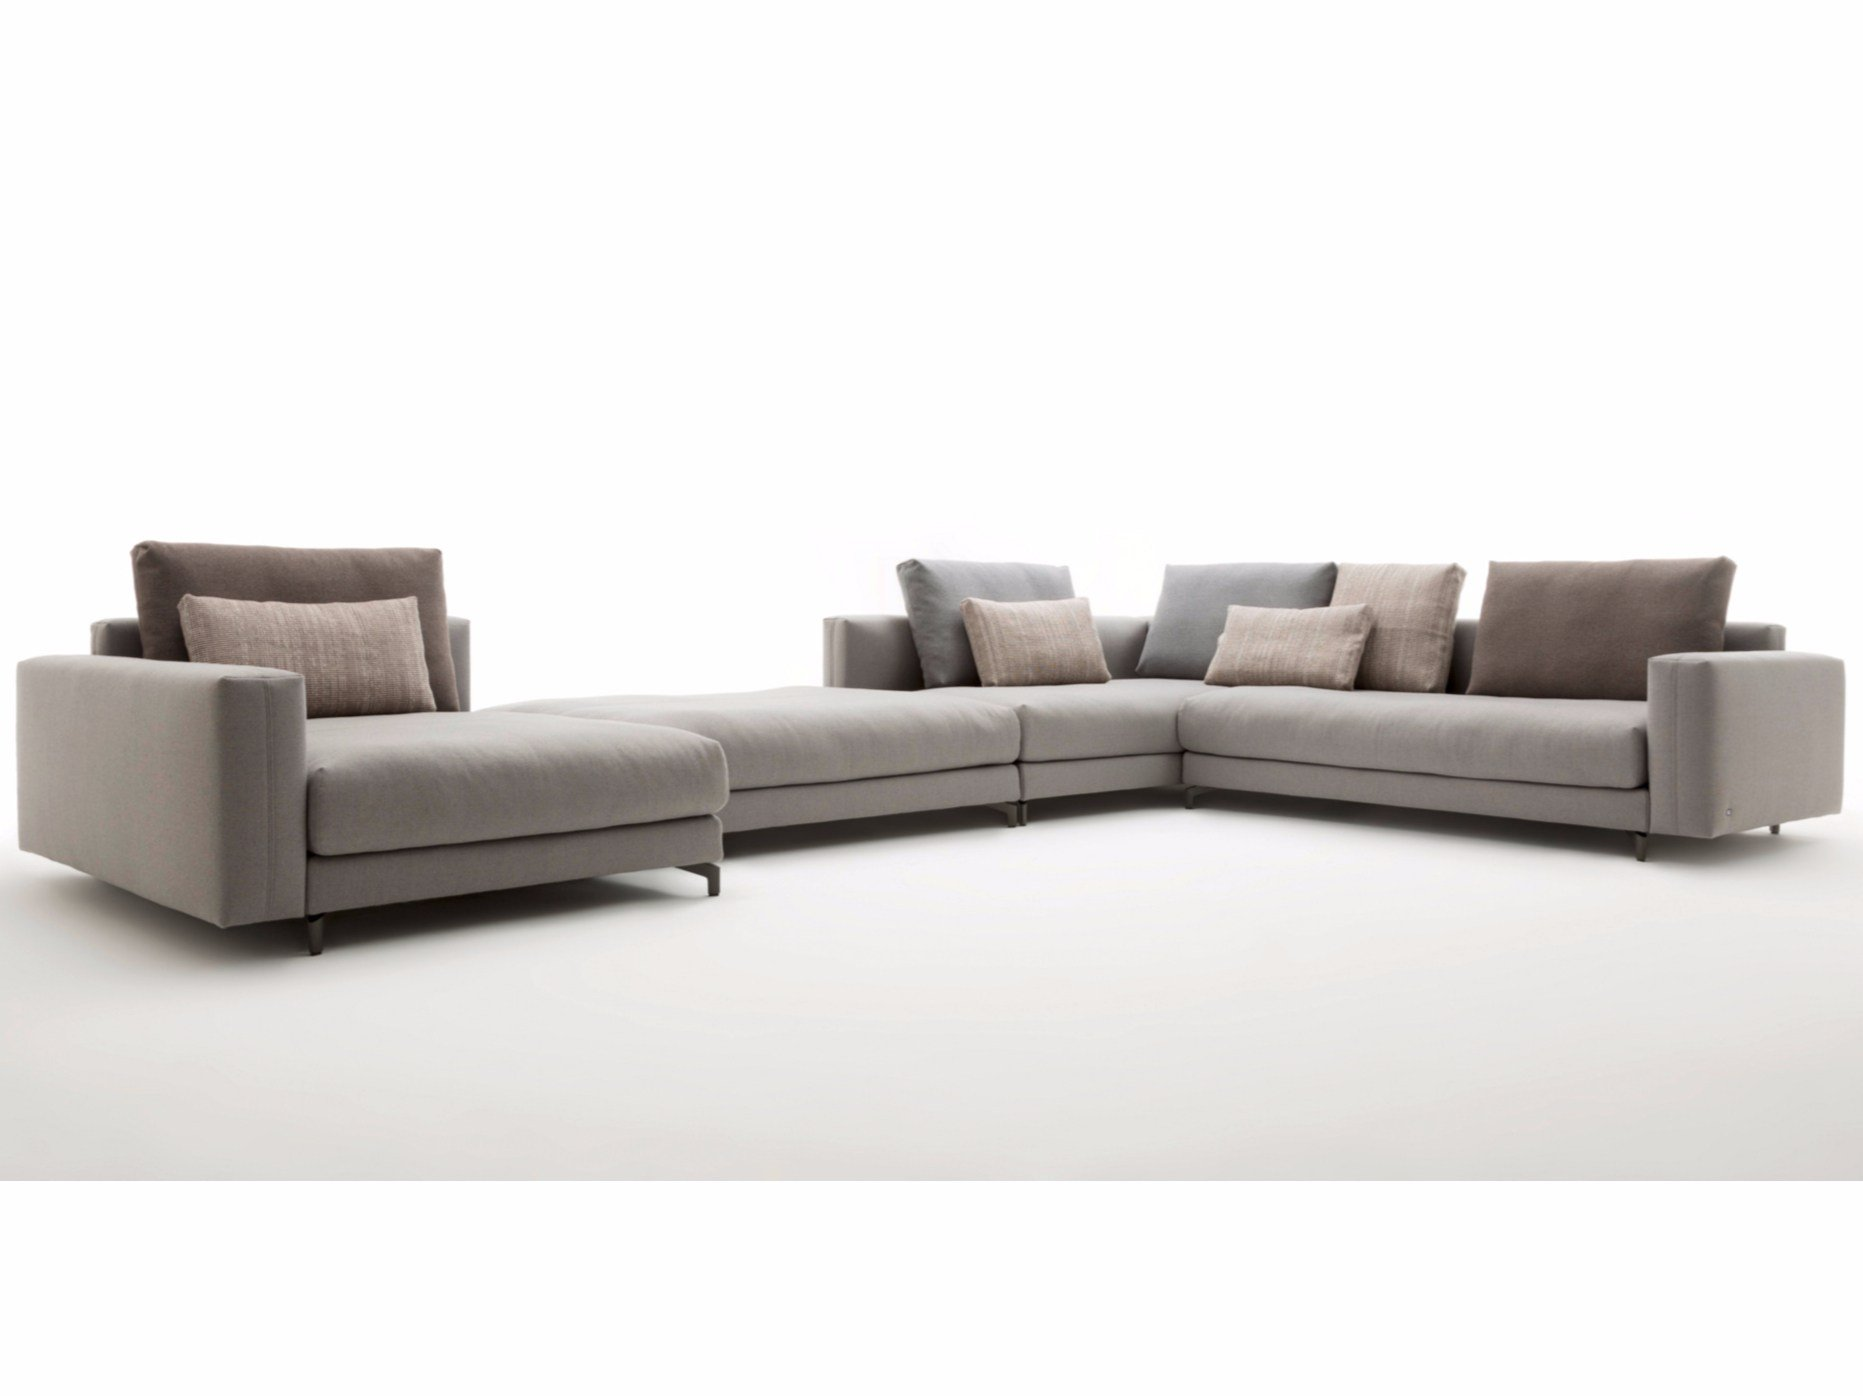 Sofa rolf benz mio Sofa benz rolf